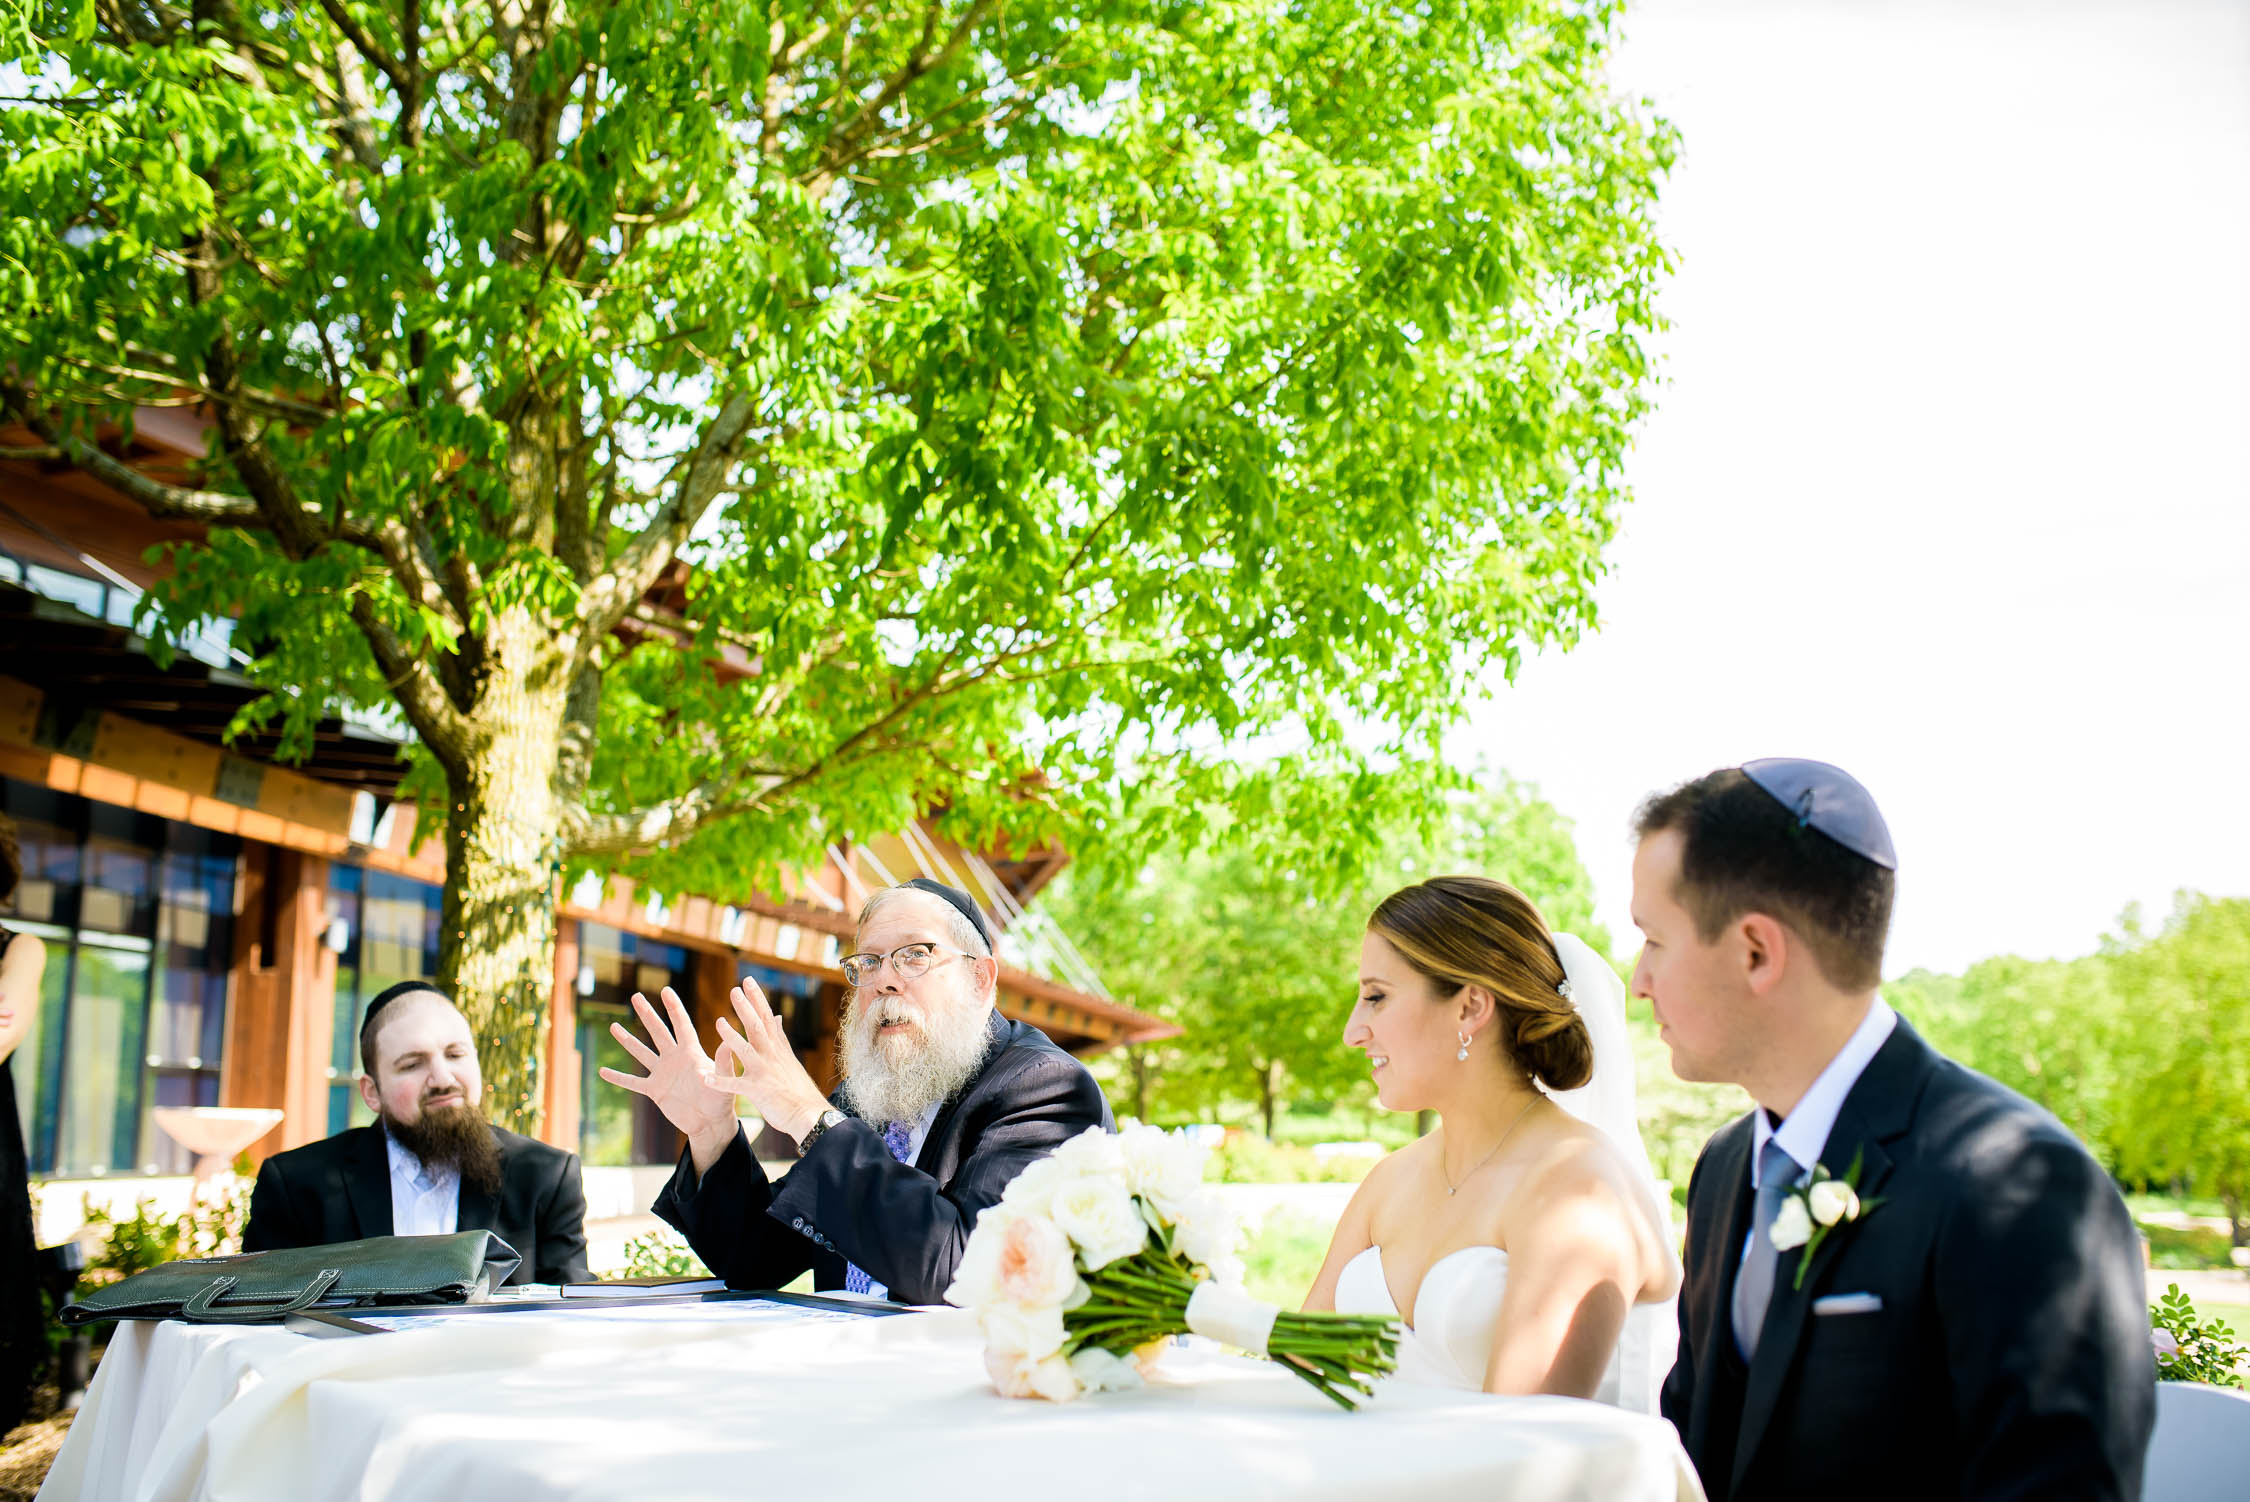 Ketubah signing at Independence Grove in Libertyville.